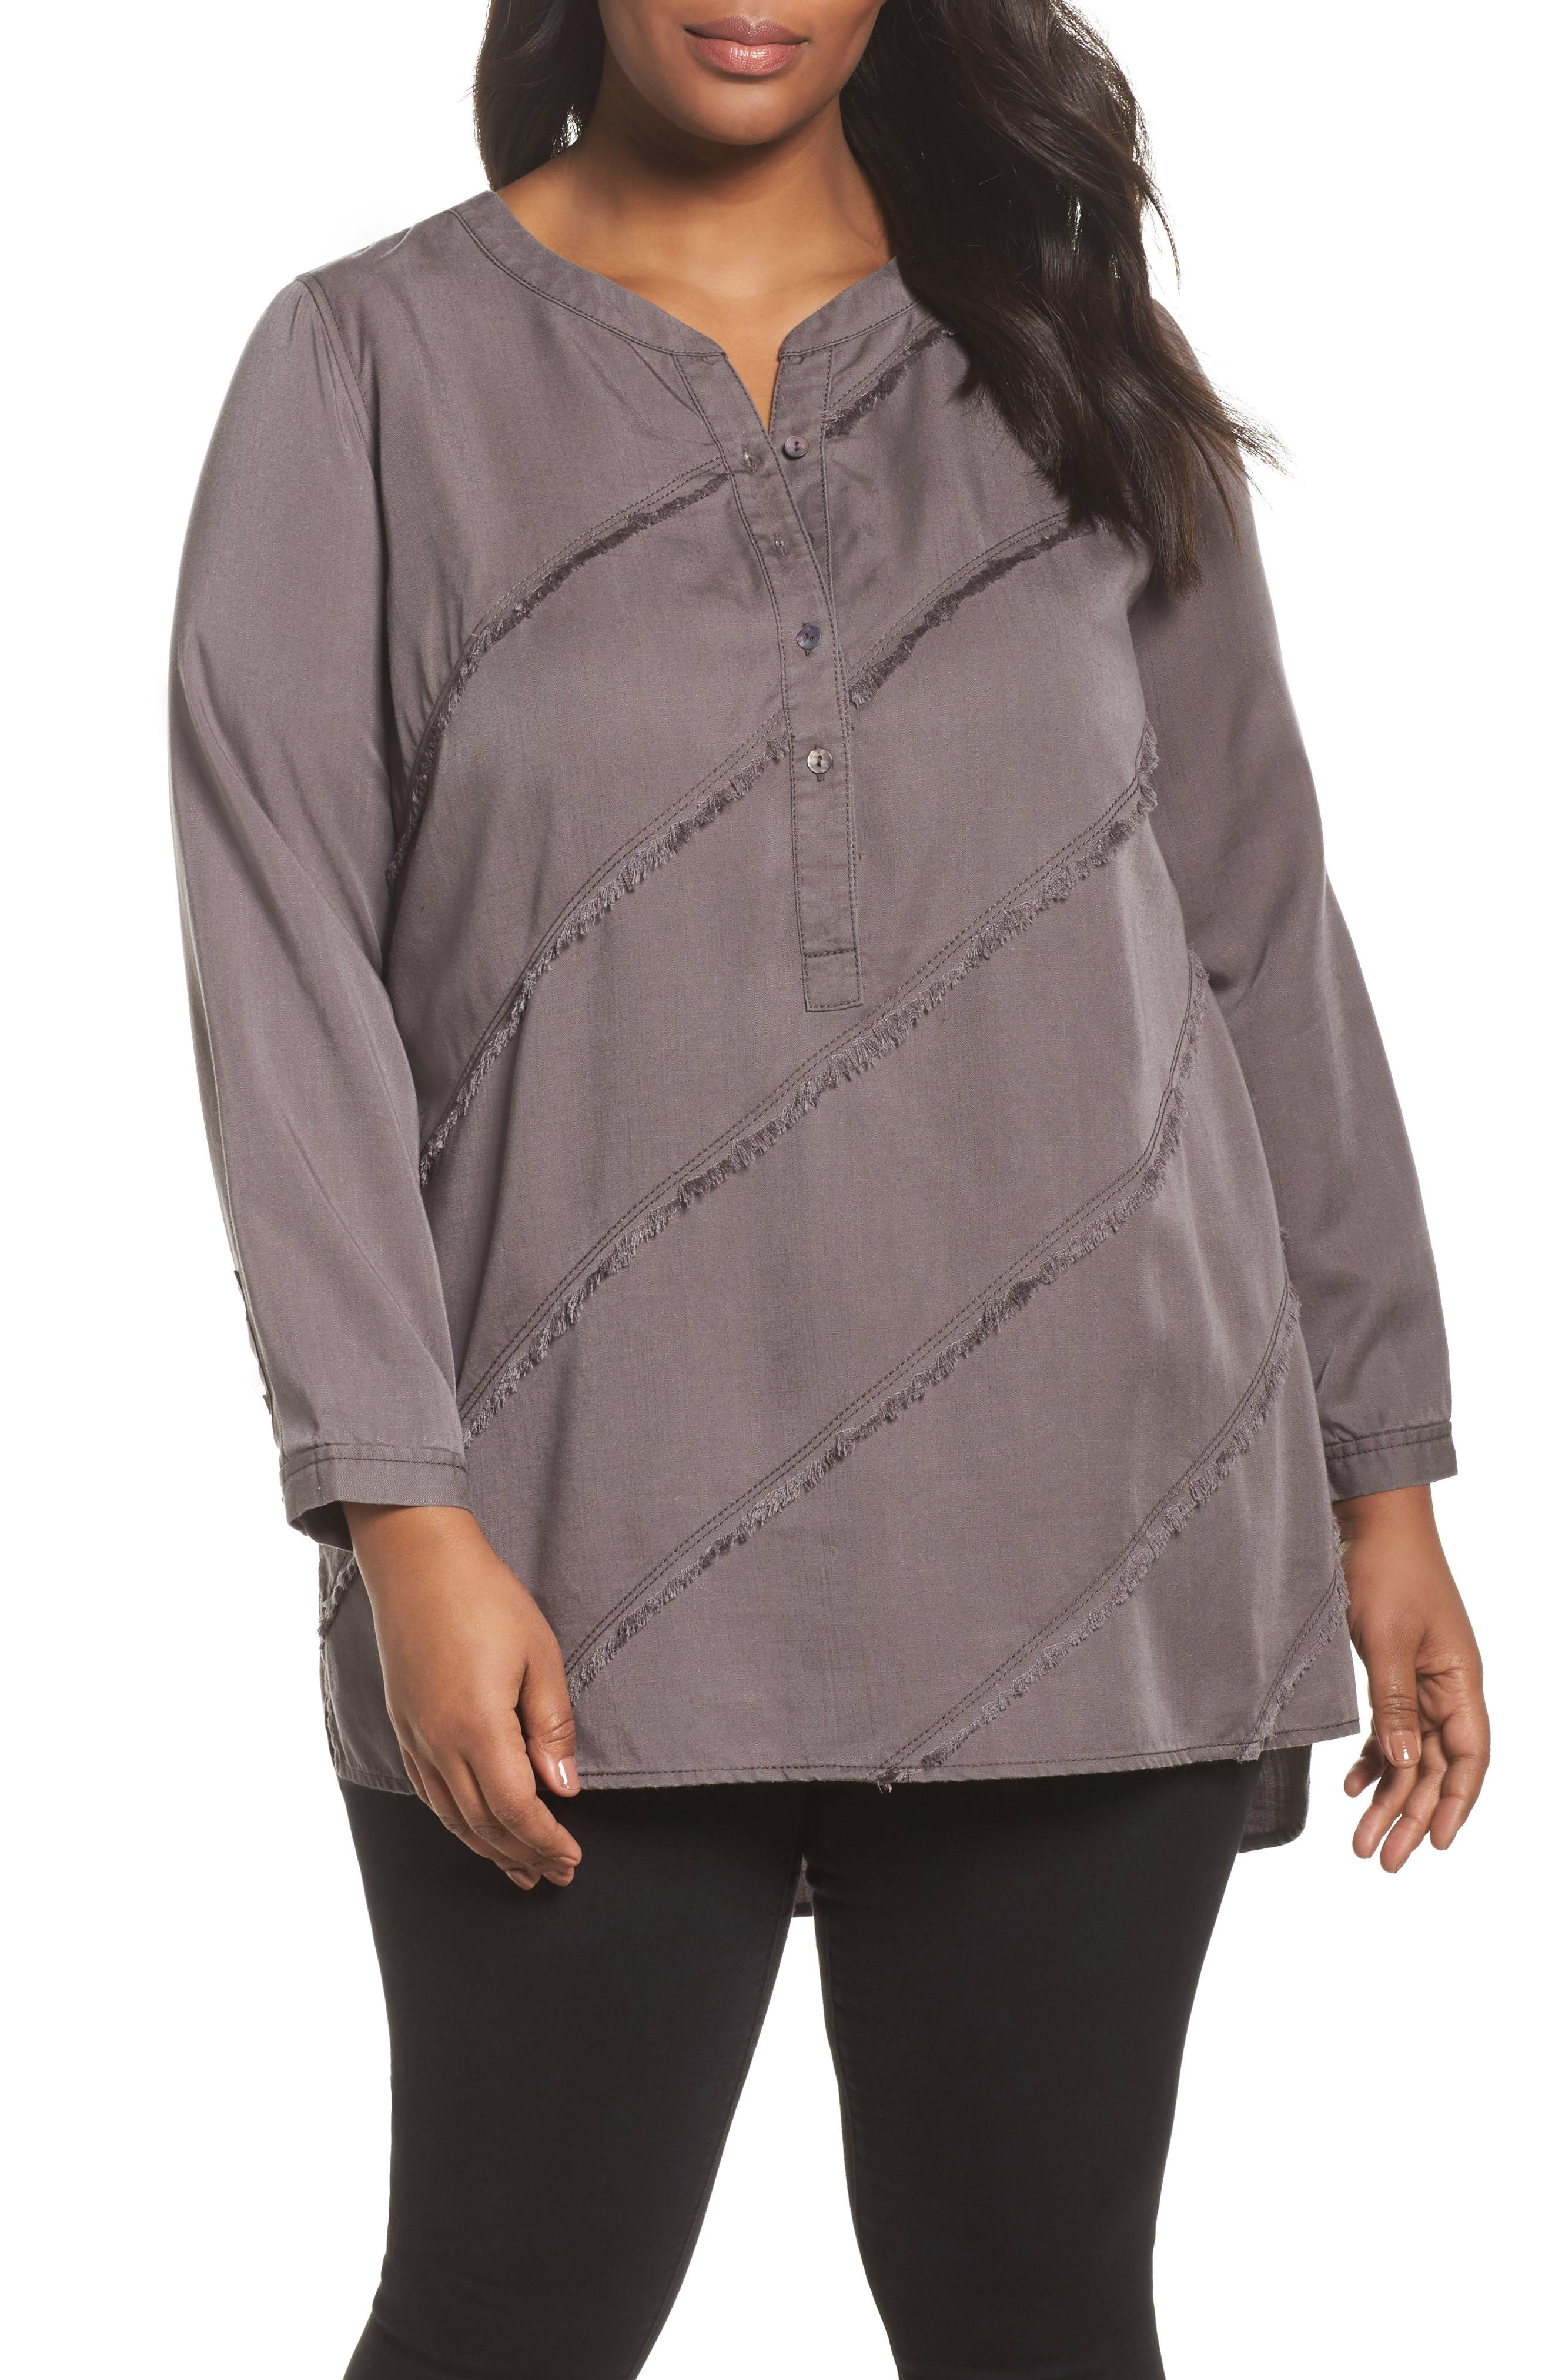 Main Image - NIC+ZOE Tranquil Tunic Top (Plus Size)